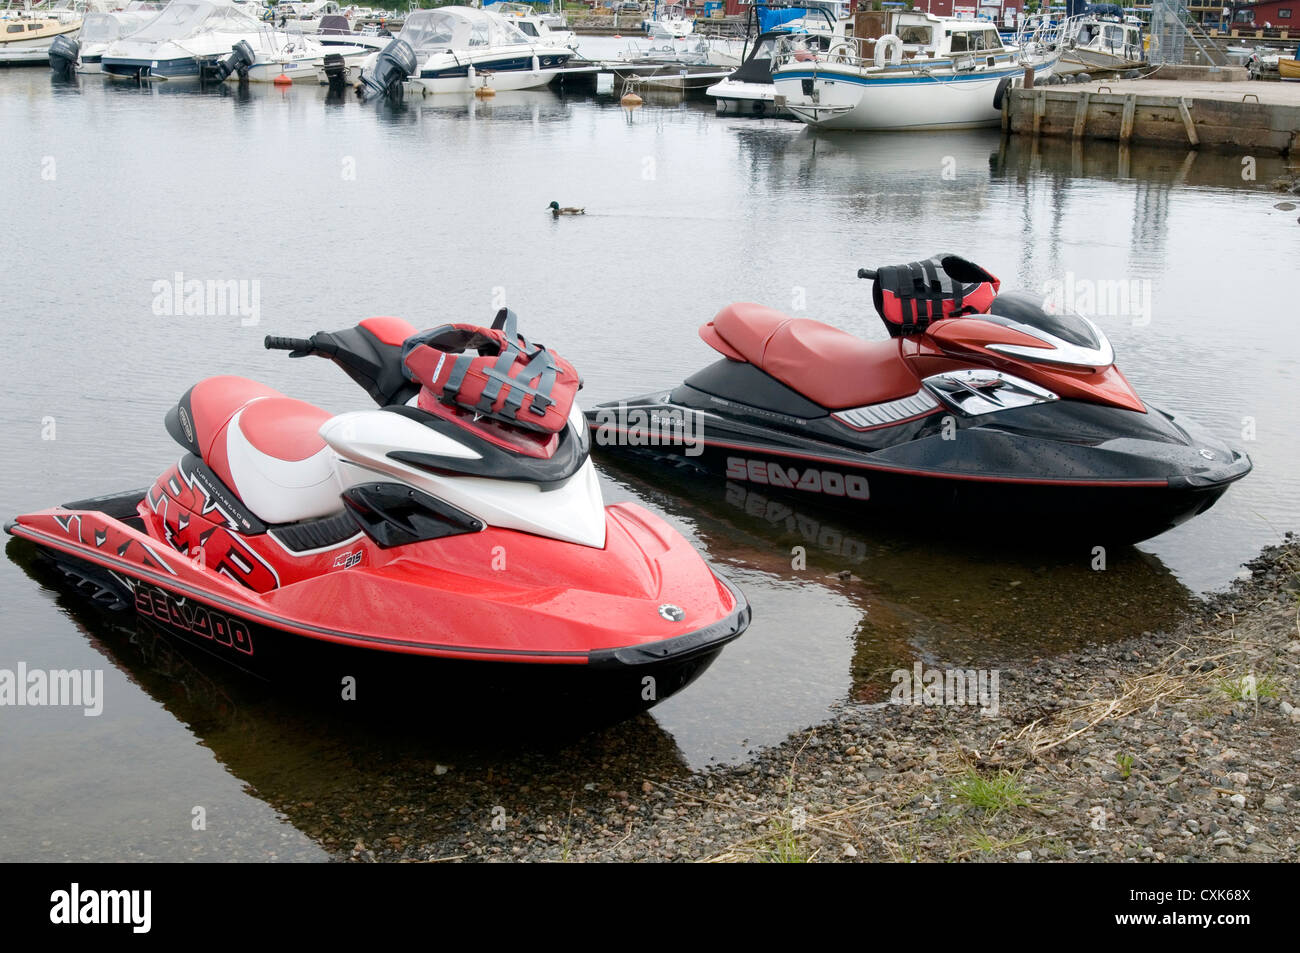 jet ski skis jetski jetskis watersports water sports bike bikes - Stock Image